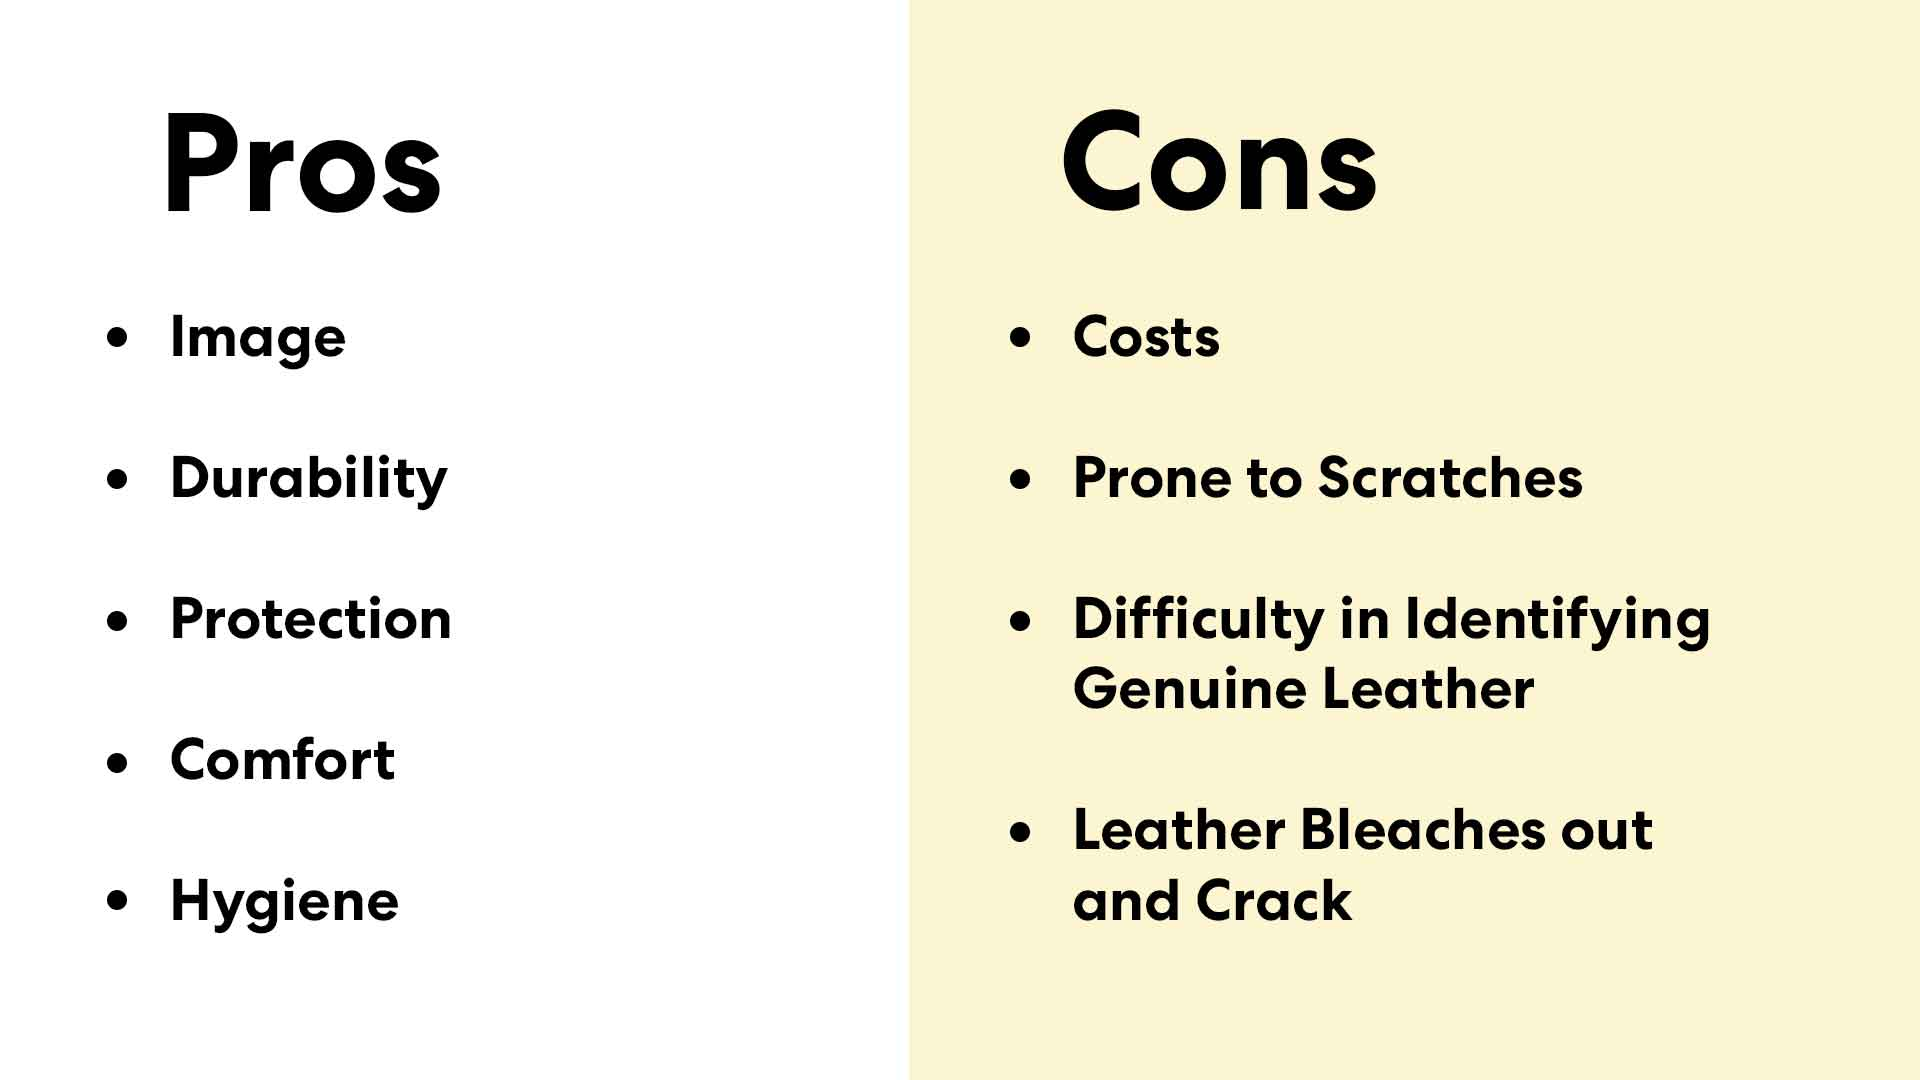 pros and cons of leather